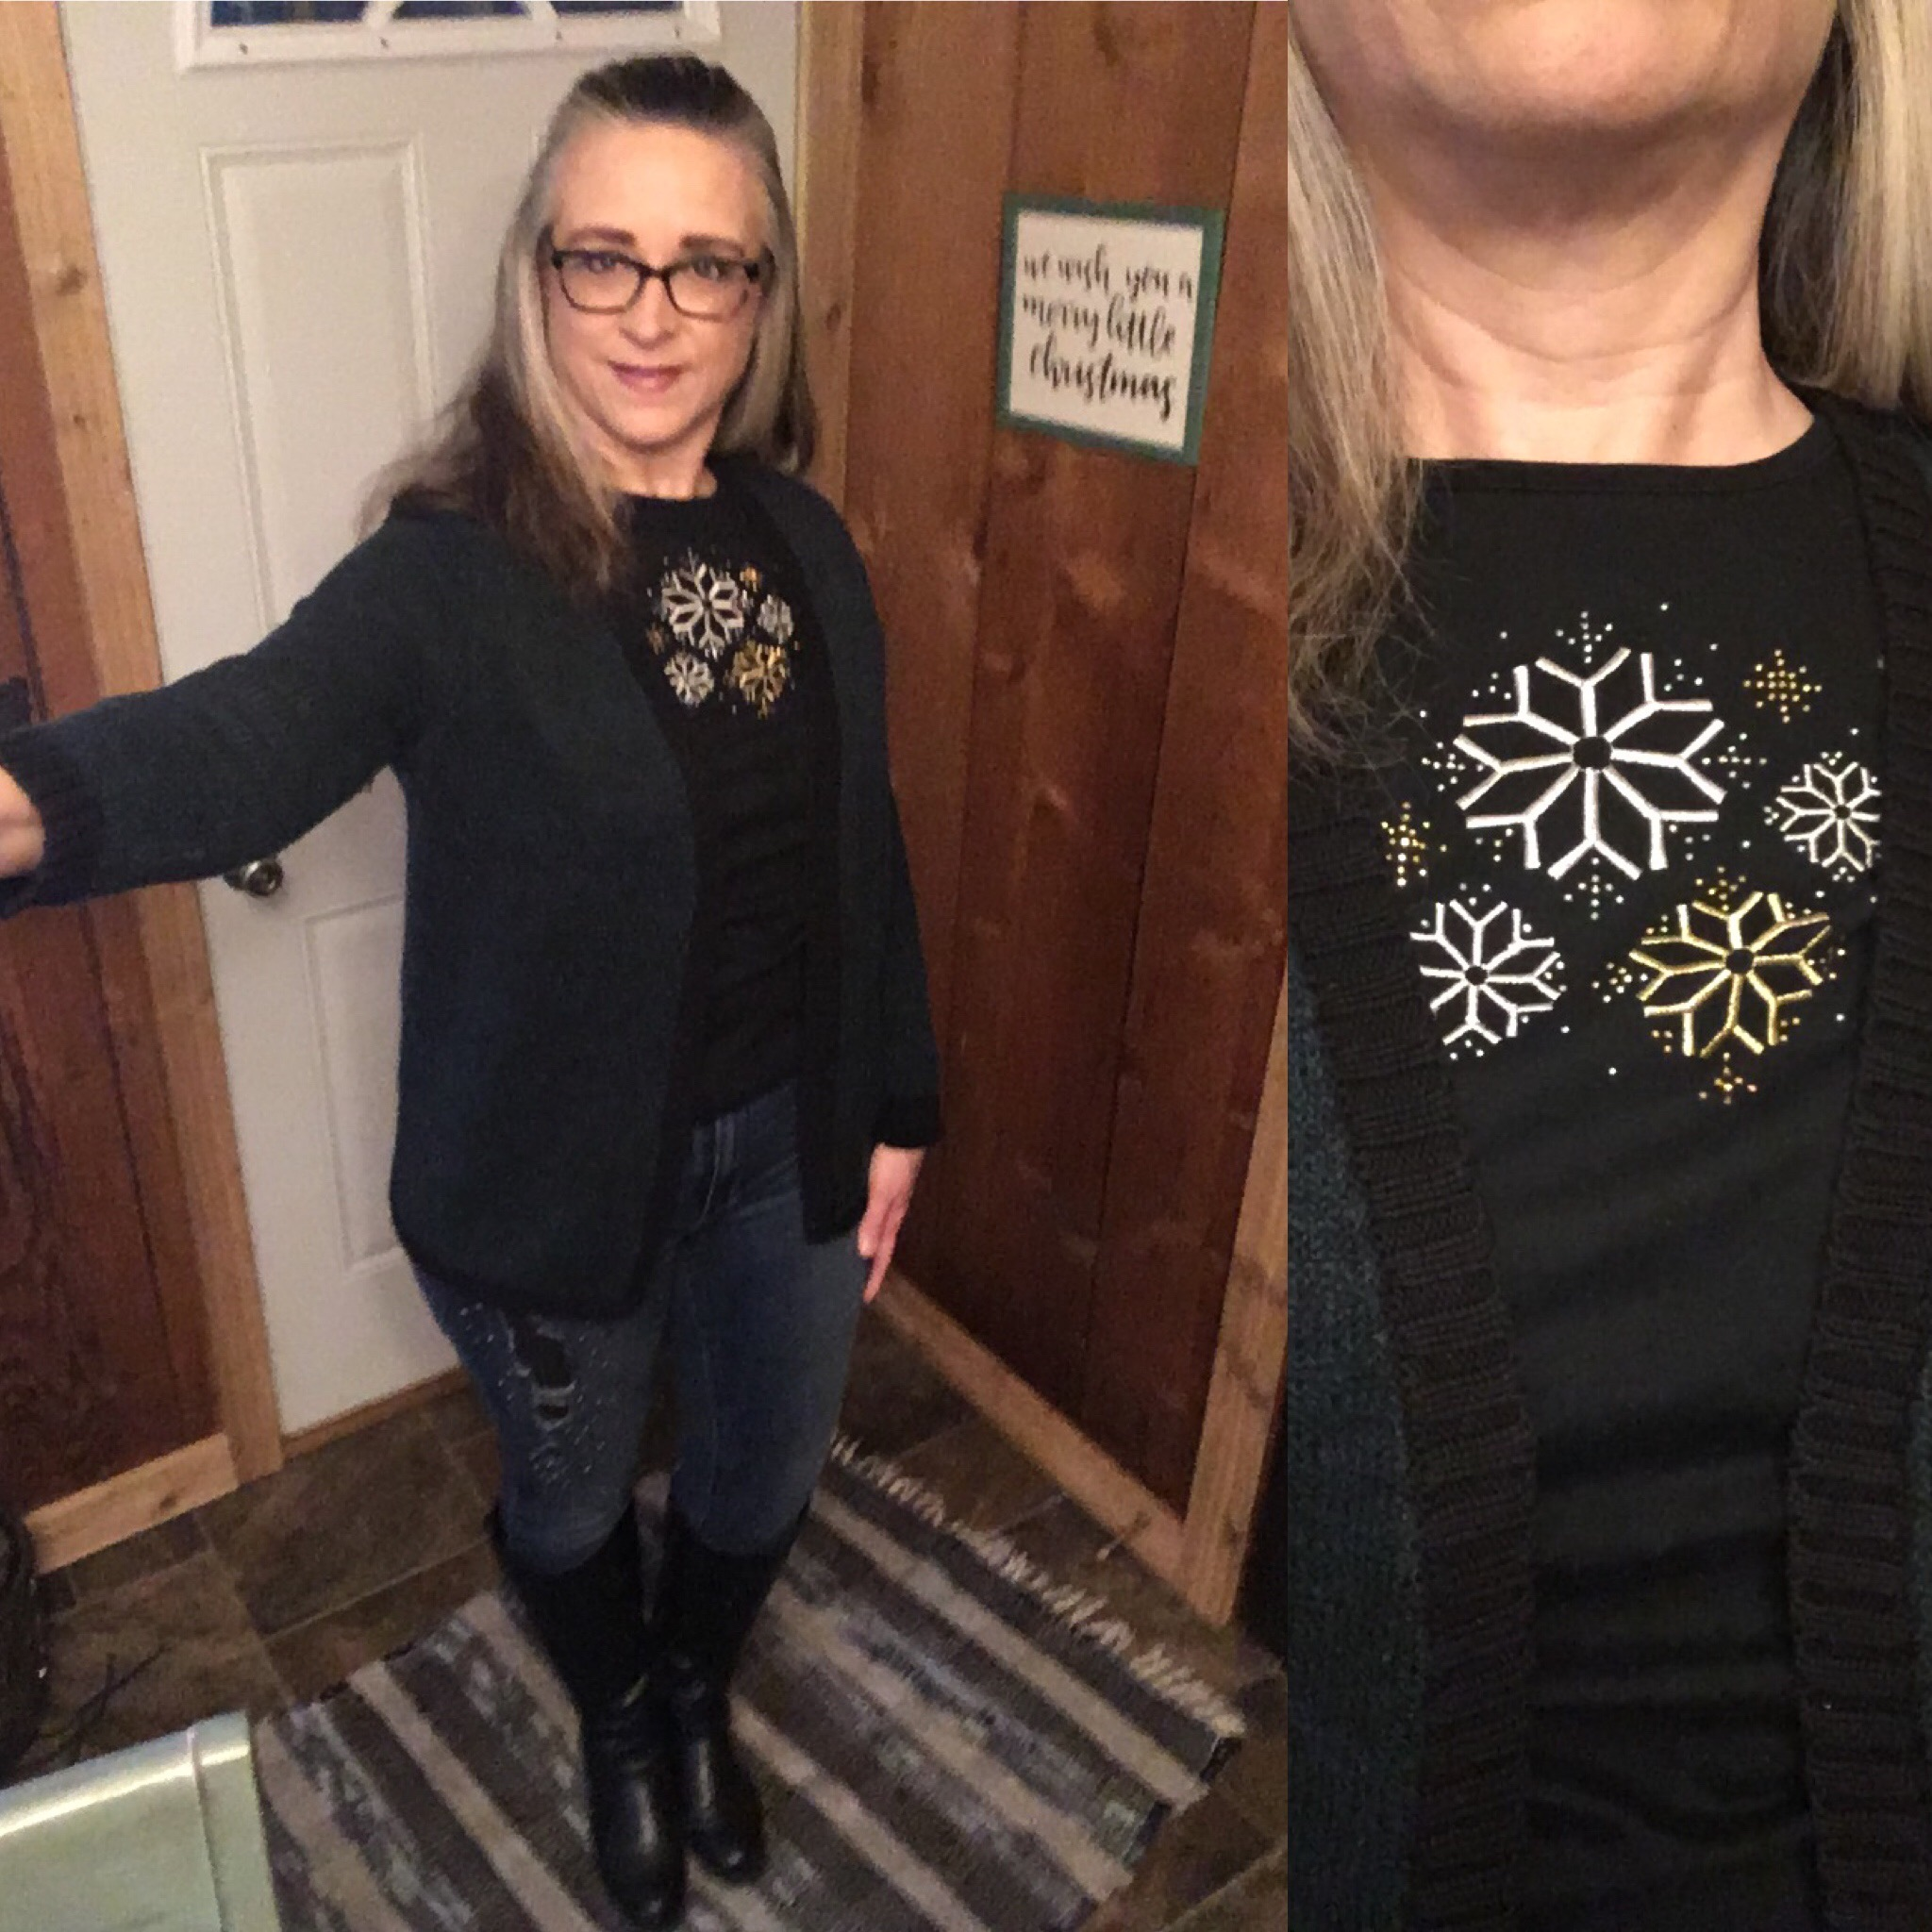 20 Days of Christmas - Metallic Snowflake sweater